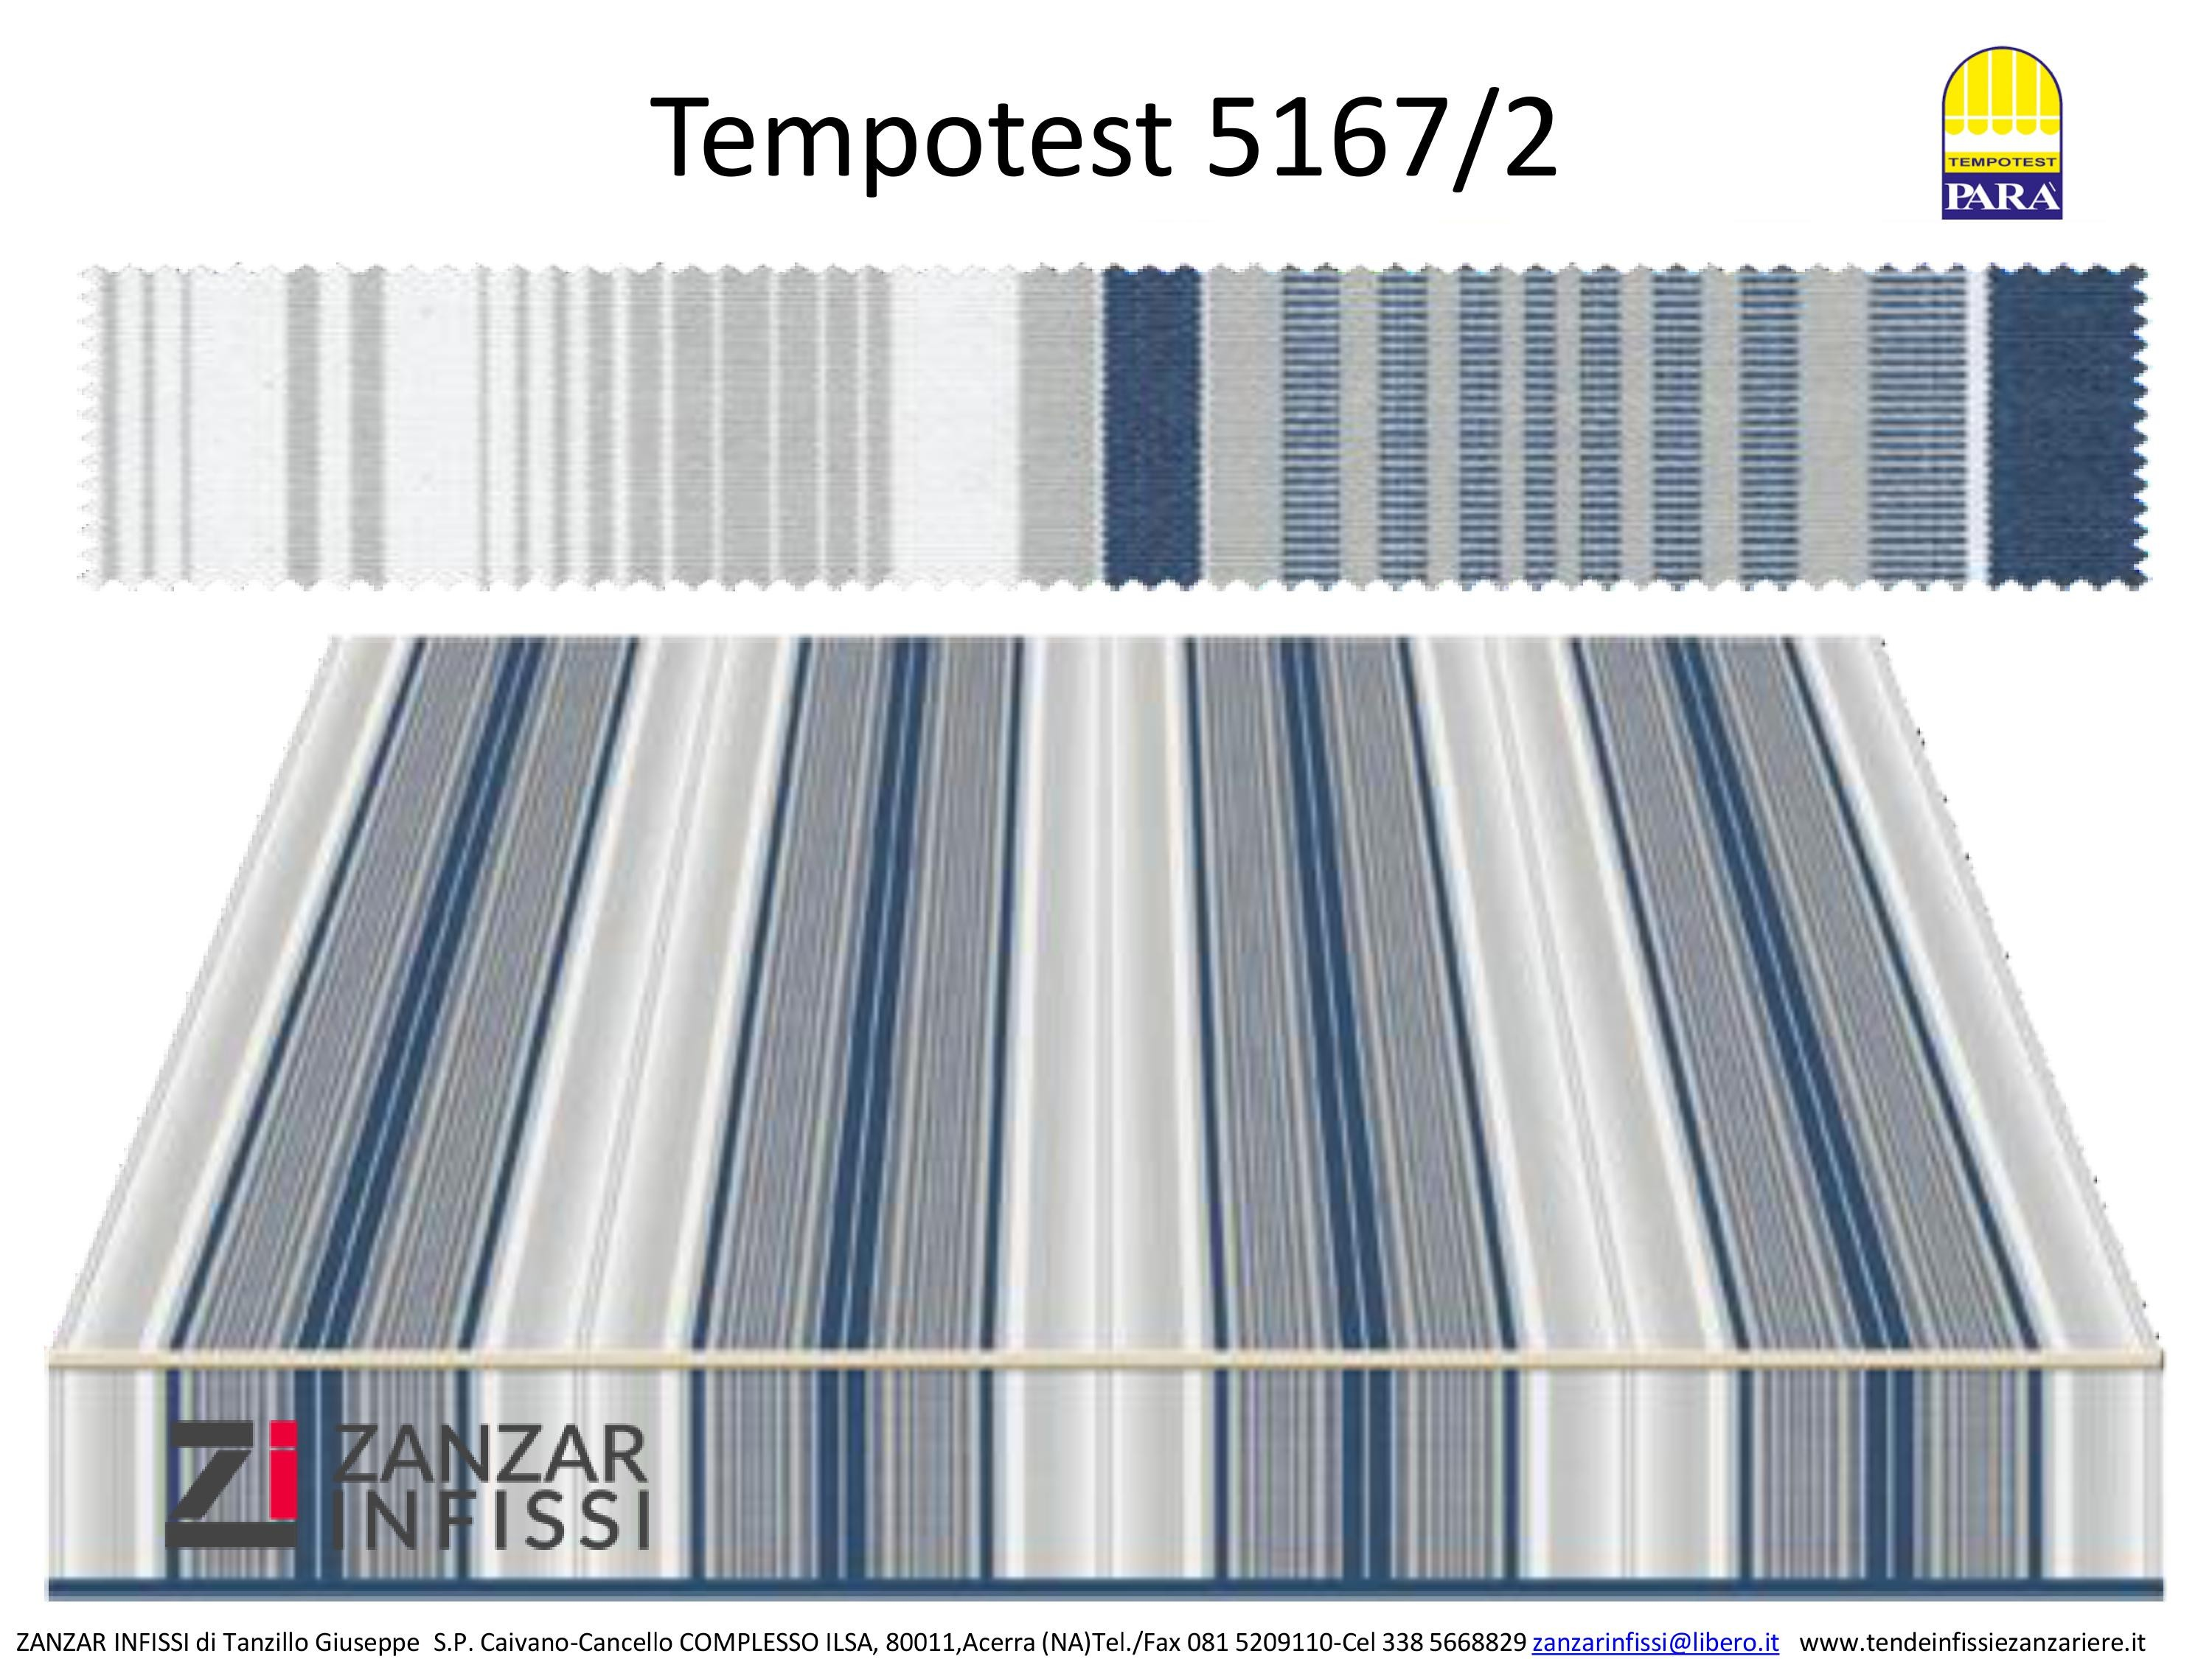 Tempotest 5167/2